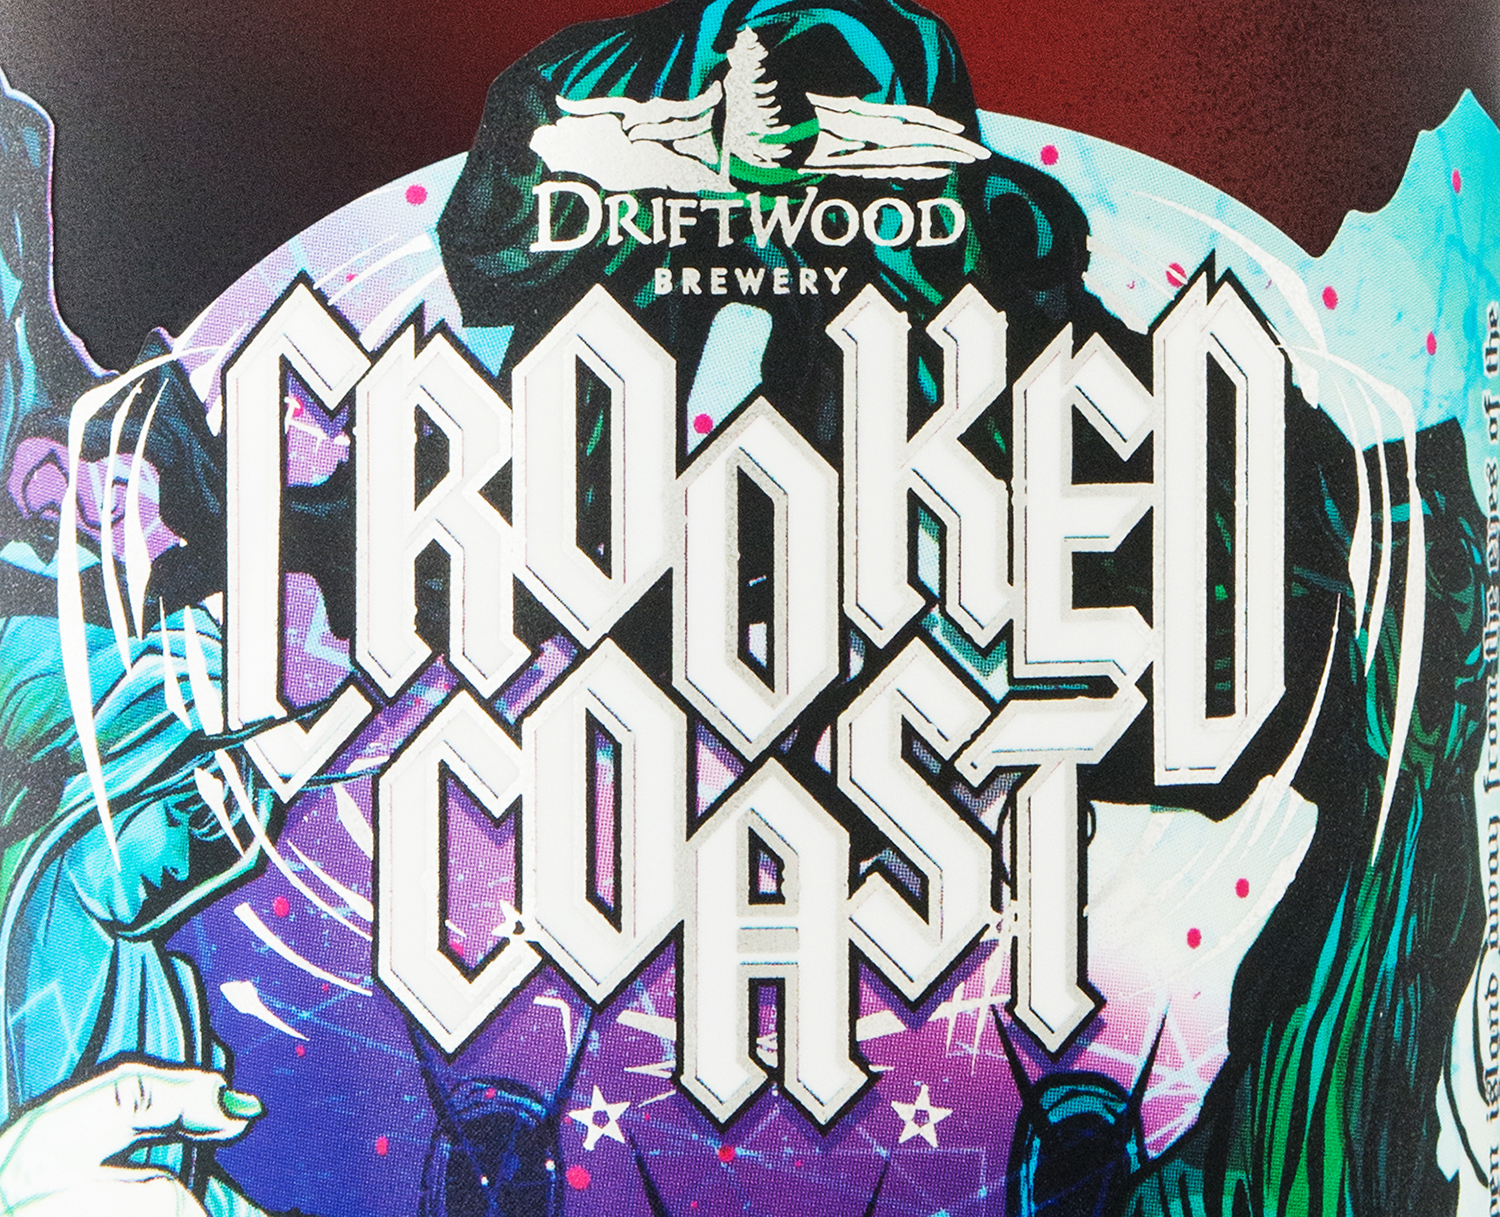 Packaging Design for Driftwood Brewery's Crooked Coast Altbier